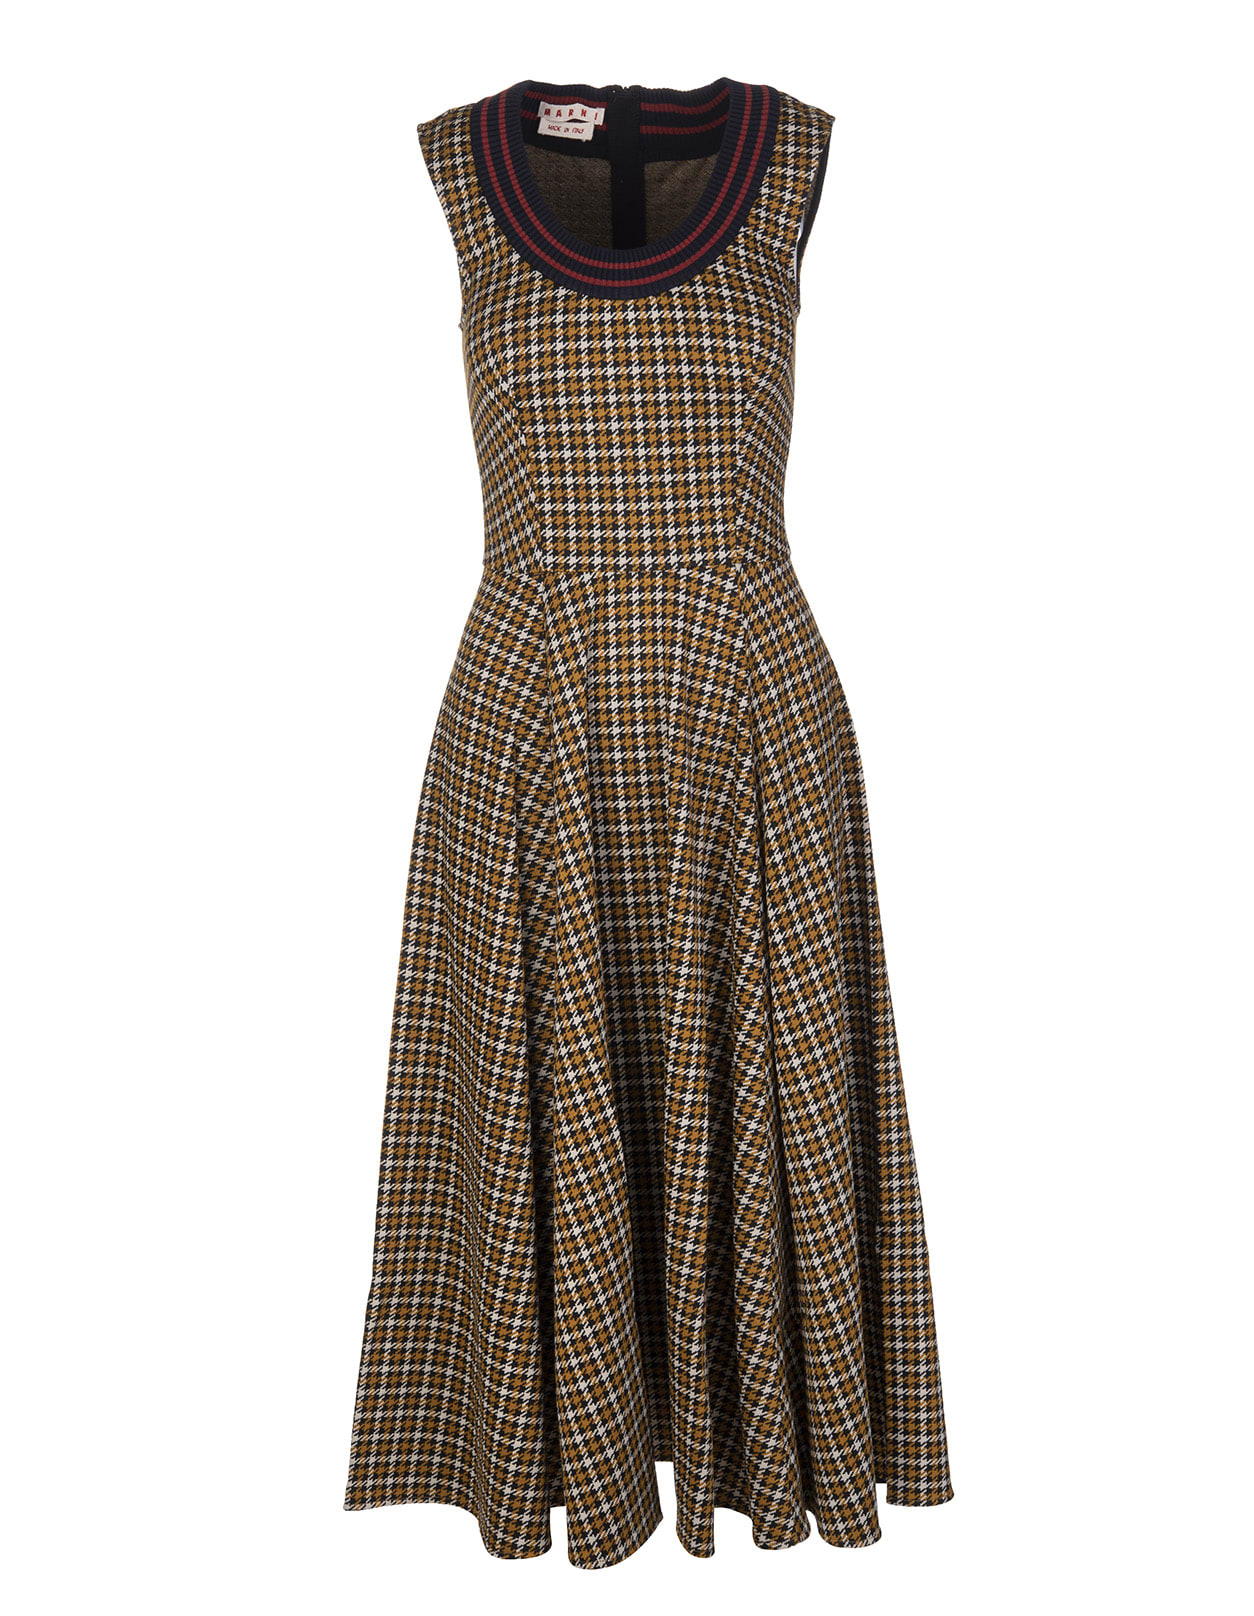 Buy Marni Sleeveless Midi Dress With Black, Ivory And Camel Houndstooth Pattern online, shop Marni with free shipping